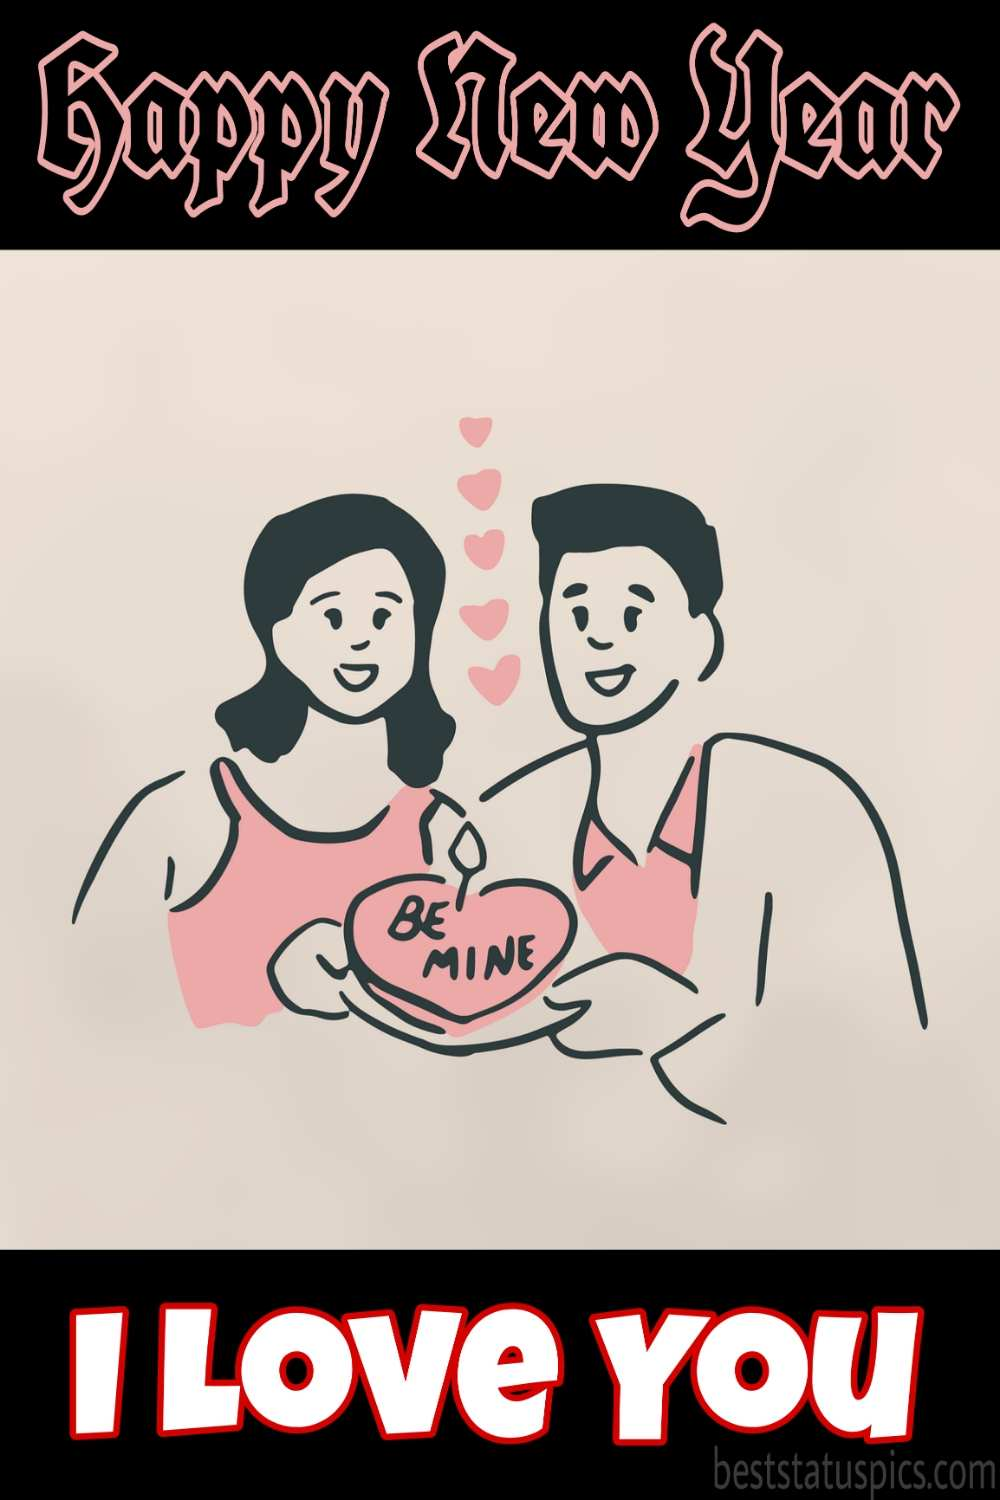 Romantic Happy new year 2022 and I love you picture with heart cake for couples, boyfriend and girlfriend